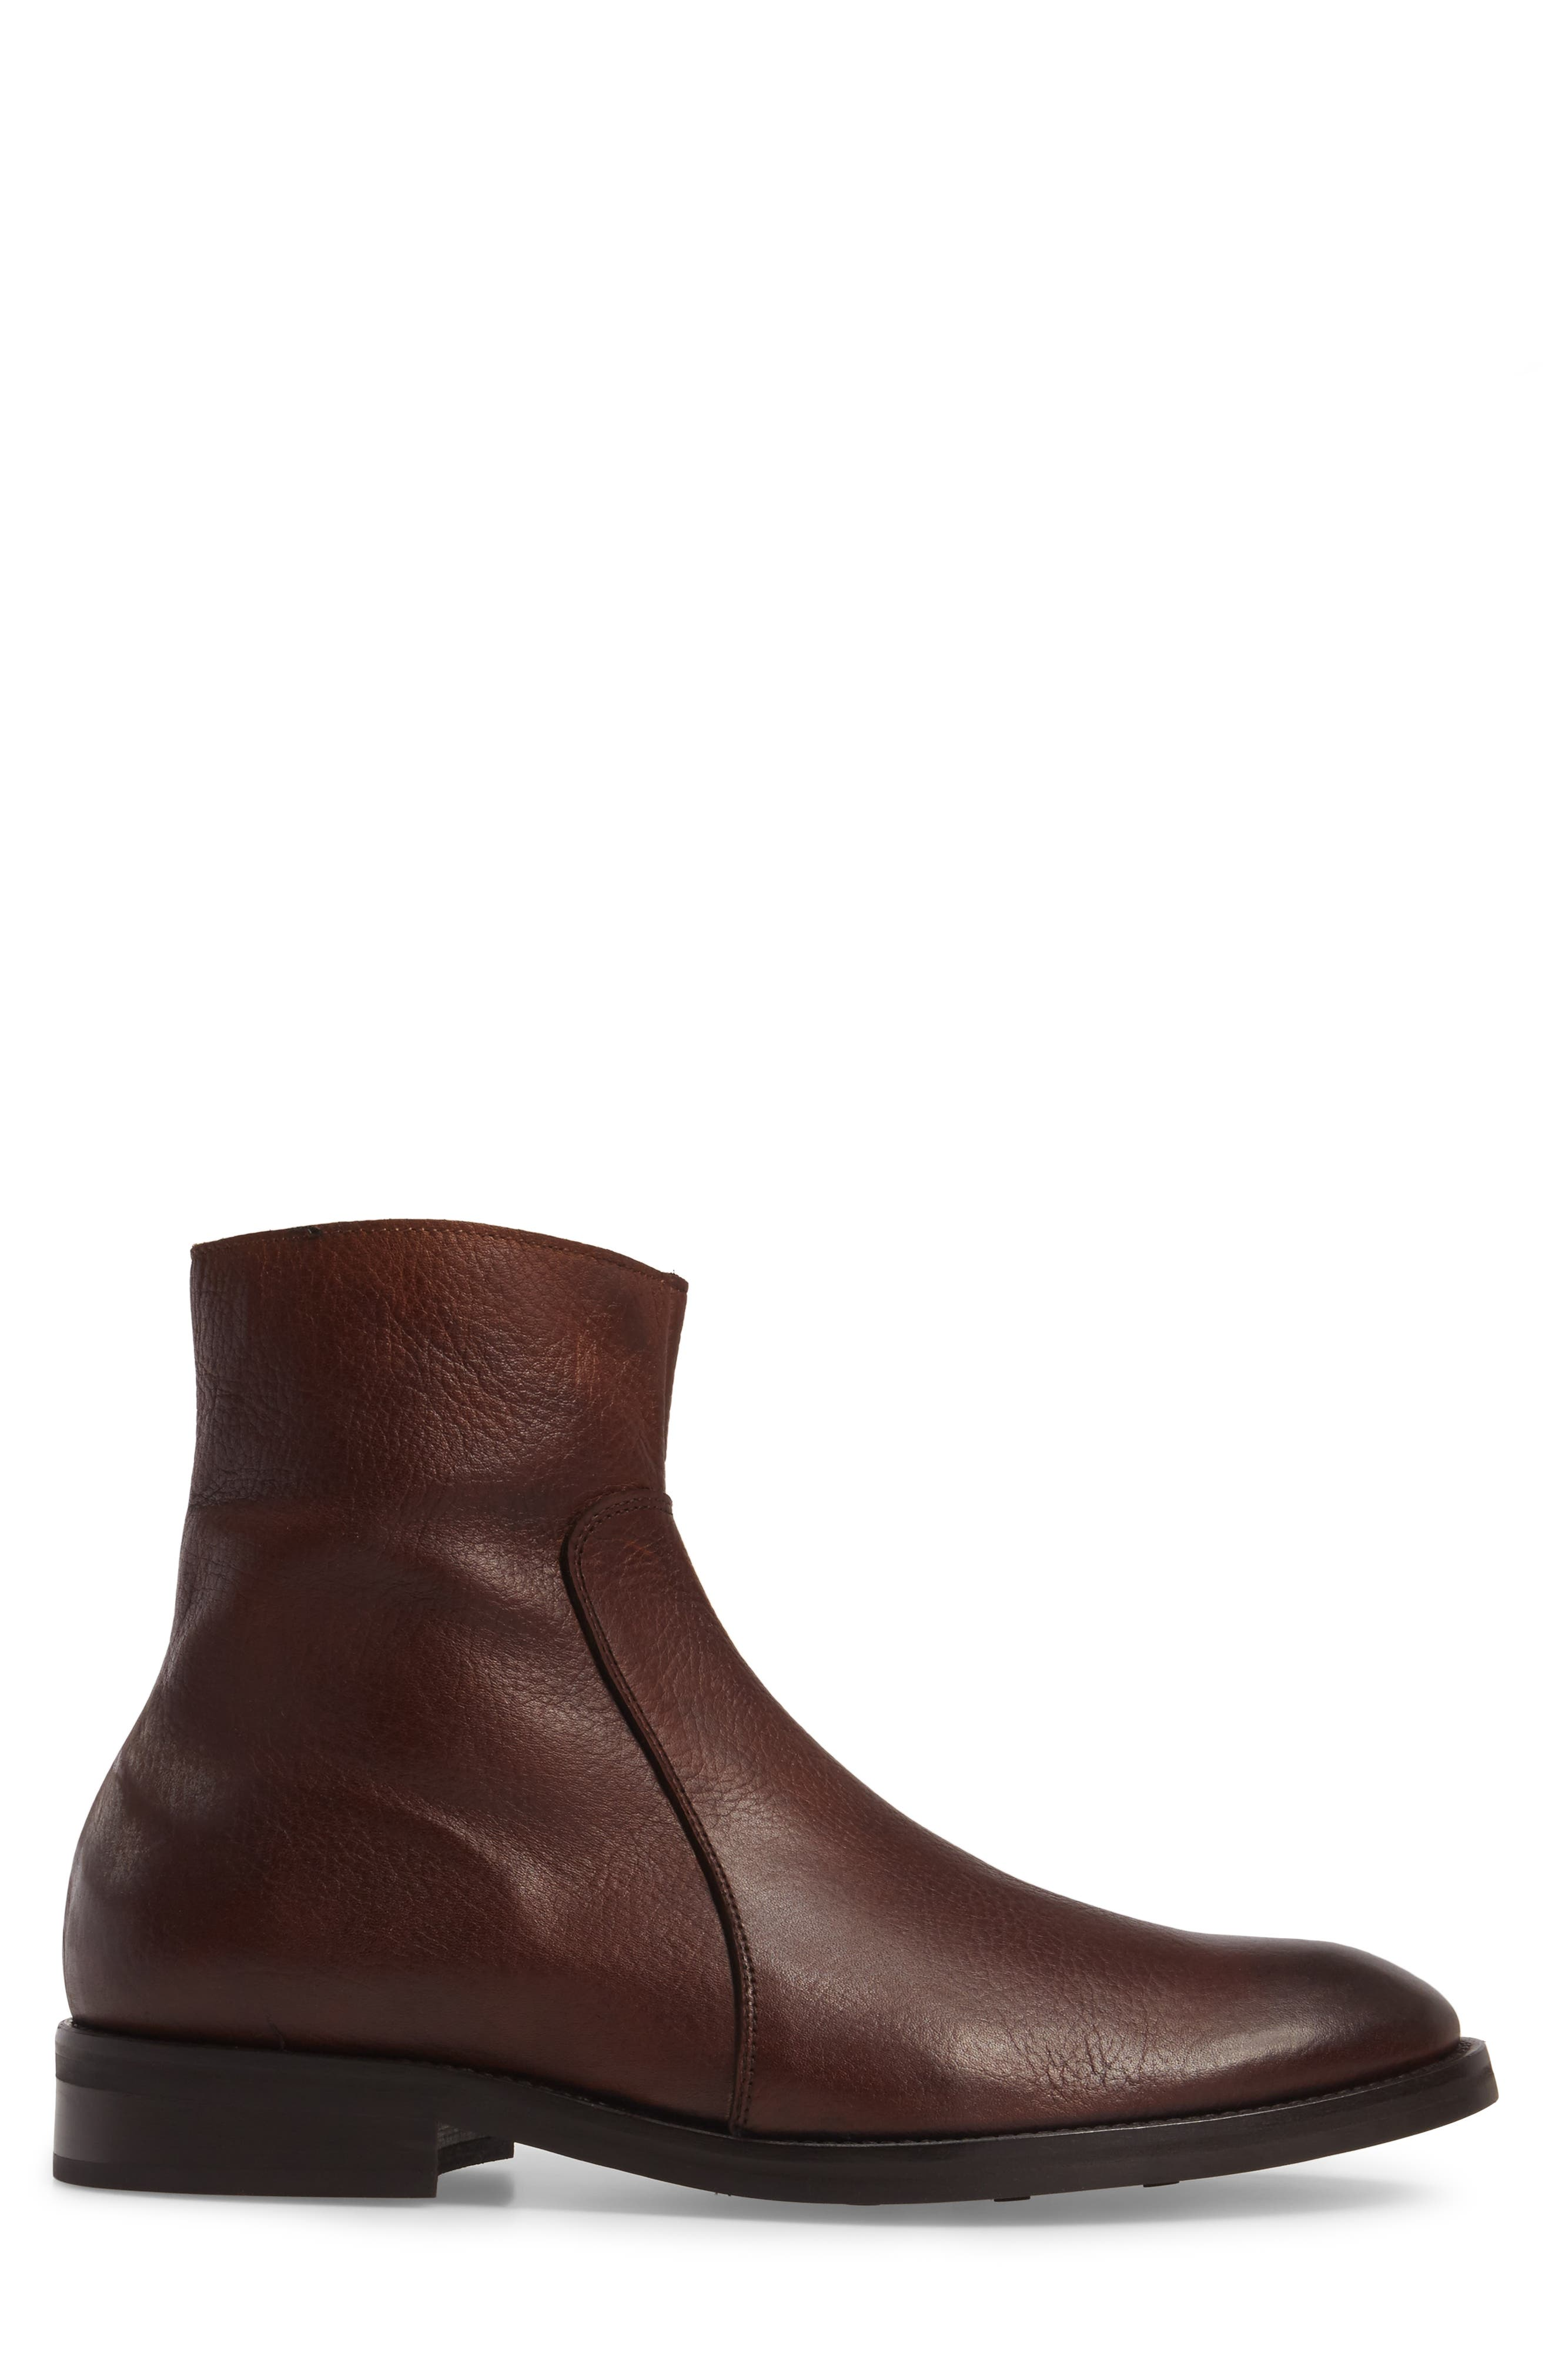 Commodore Zip Boot,                             Alternate thumbnail 6, color,